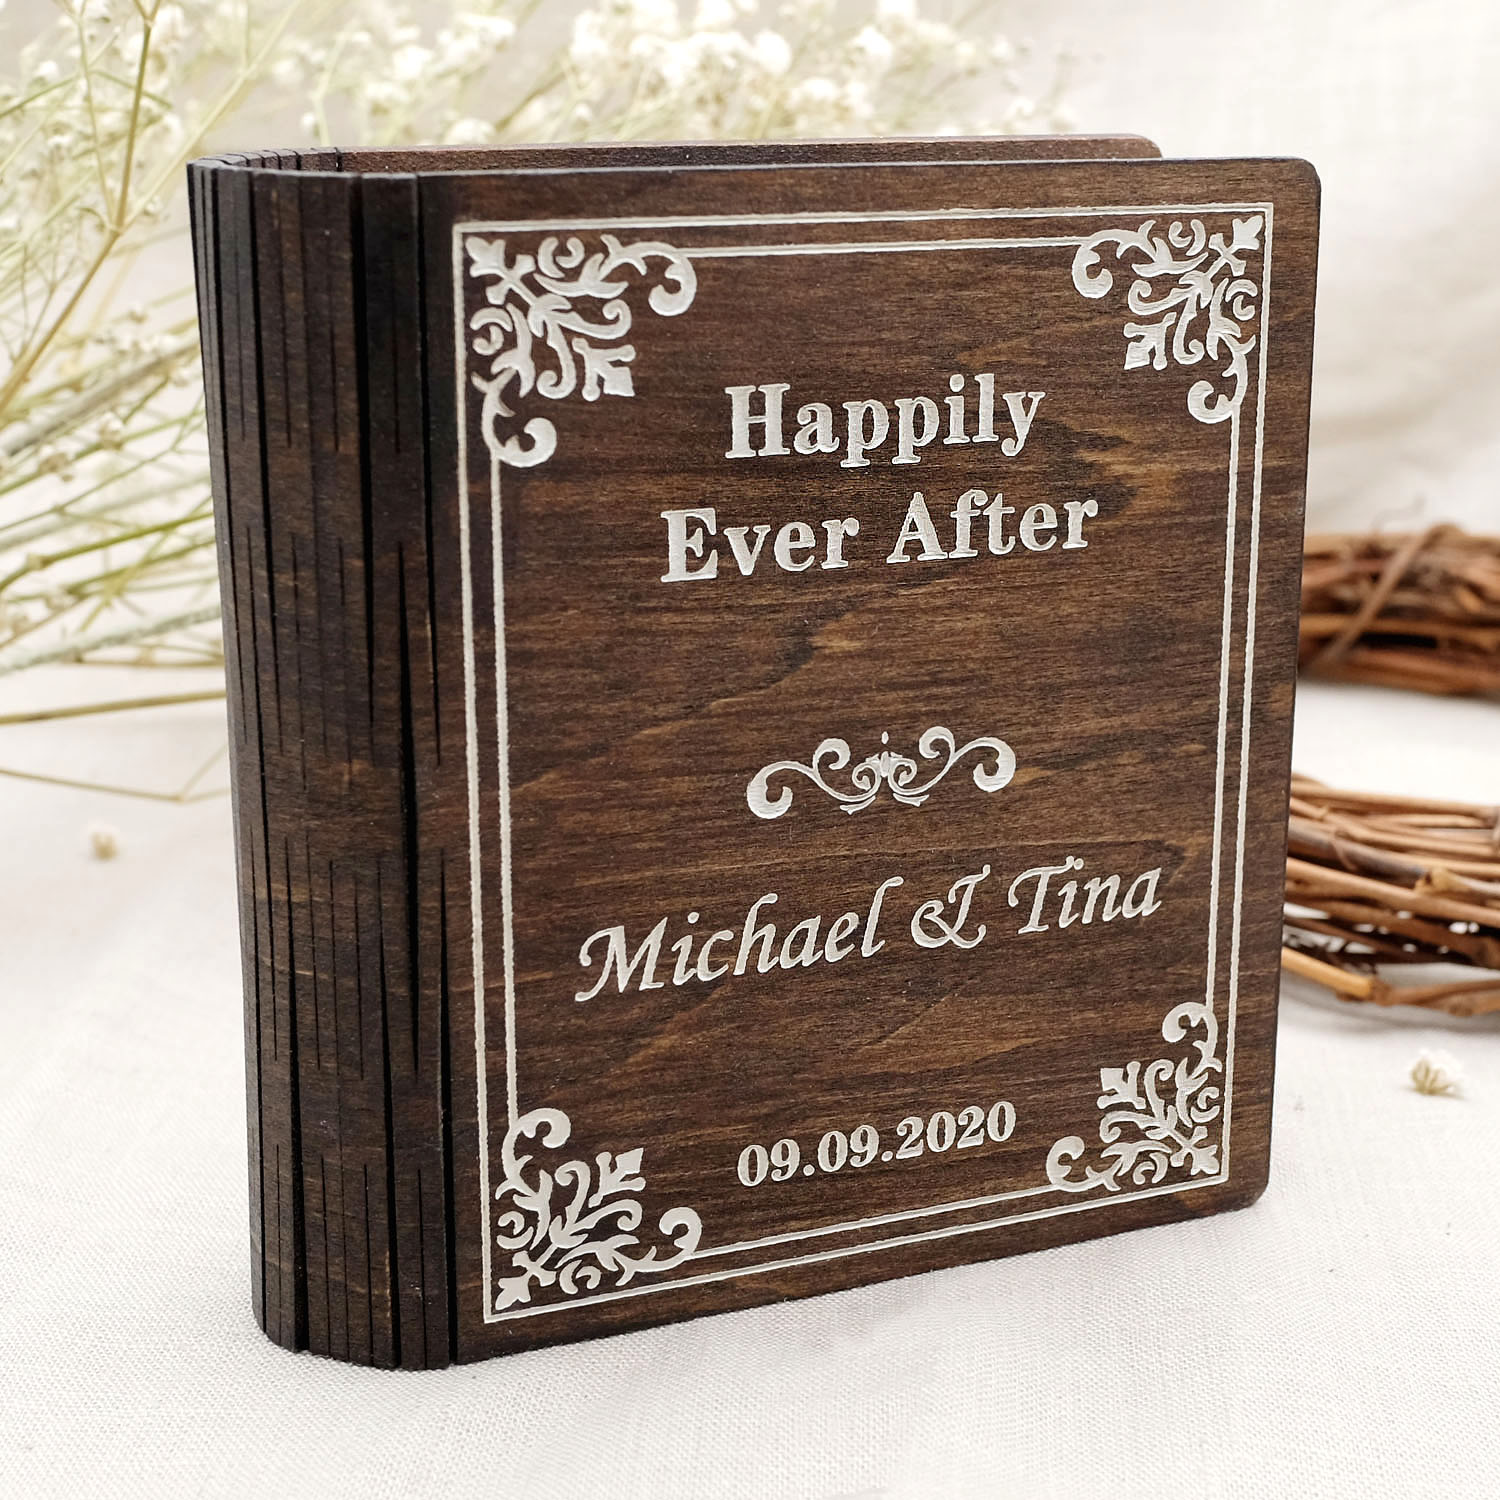 Personalized Wedding Ring Box Proposal Jewelry Holder Ring Bearer Book Box Engagement Box Valentines Gift